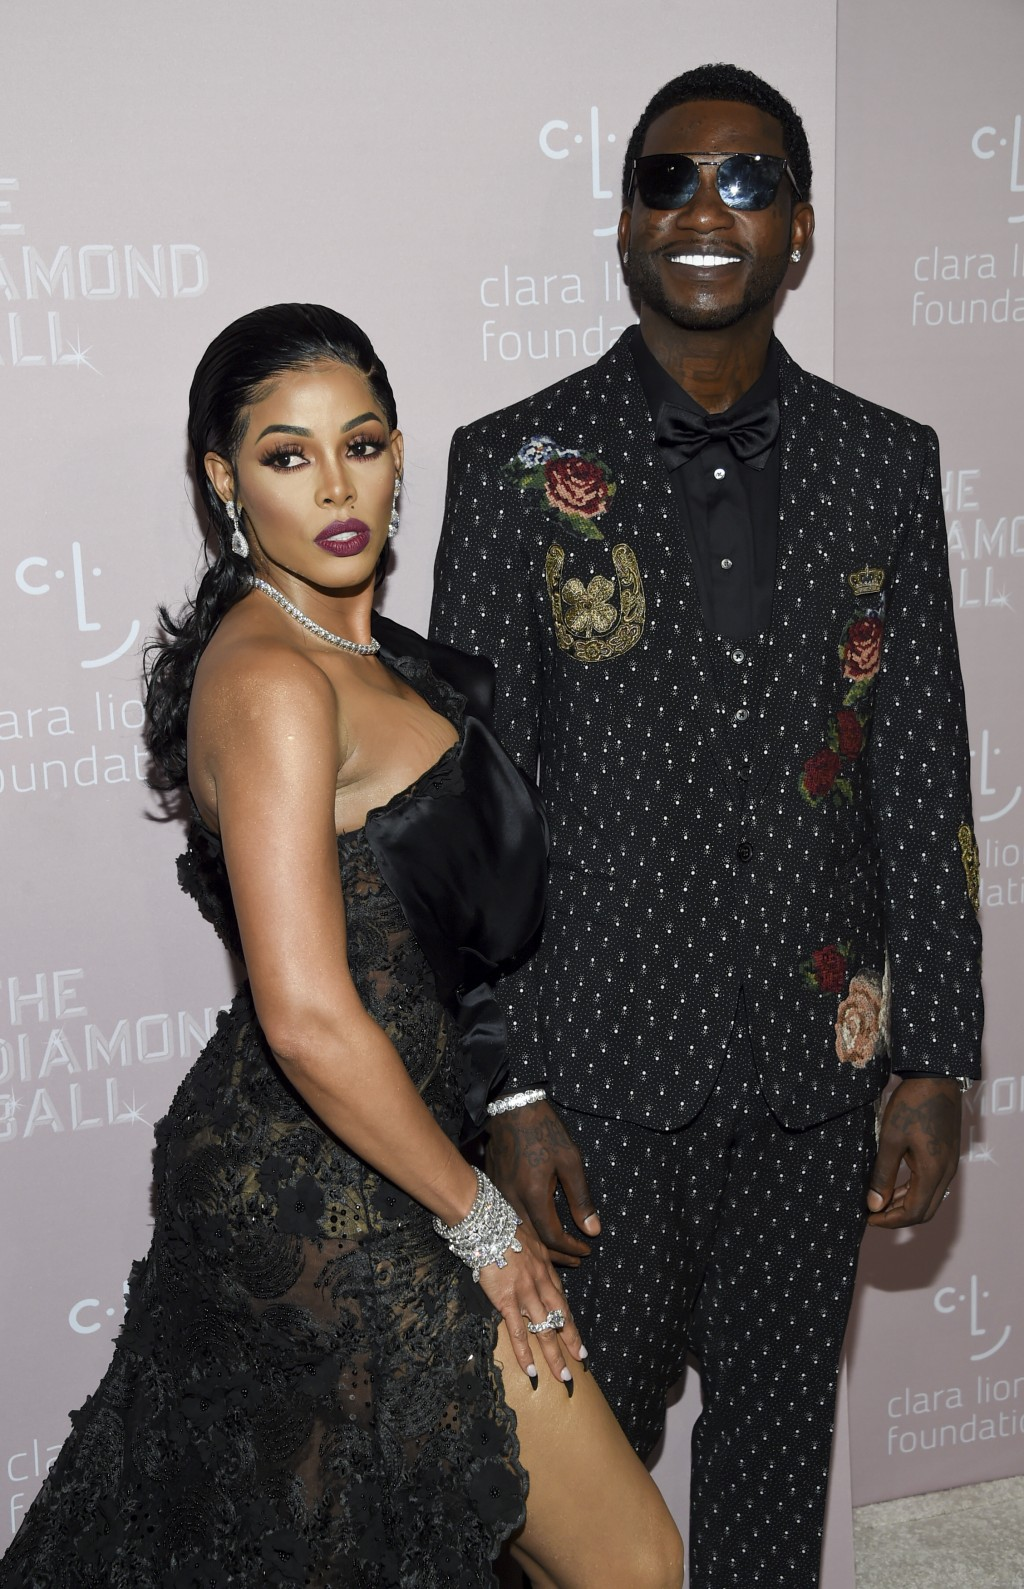 Rapper Gucci Mane, right, and fiancee Keyshia Ka'oir attend the 4th annual Diamond Ball at Cipriani Wall Street on Thursday, Sept. 13, 2018, in New Yo...